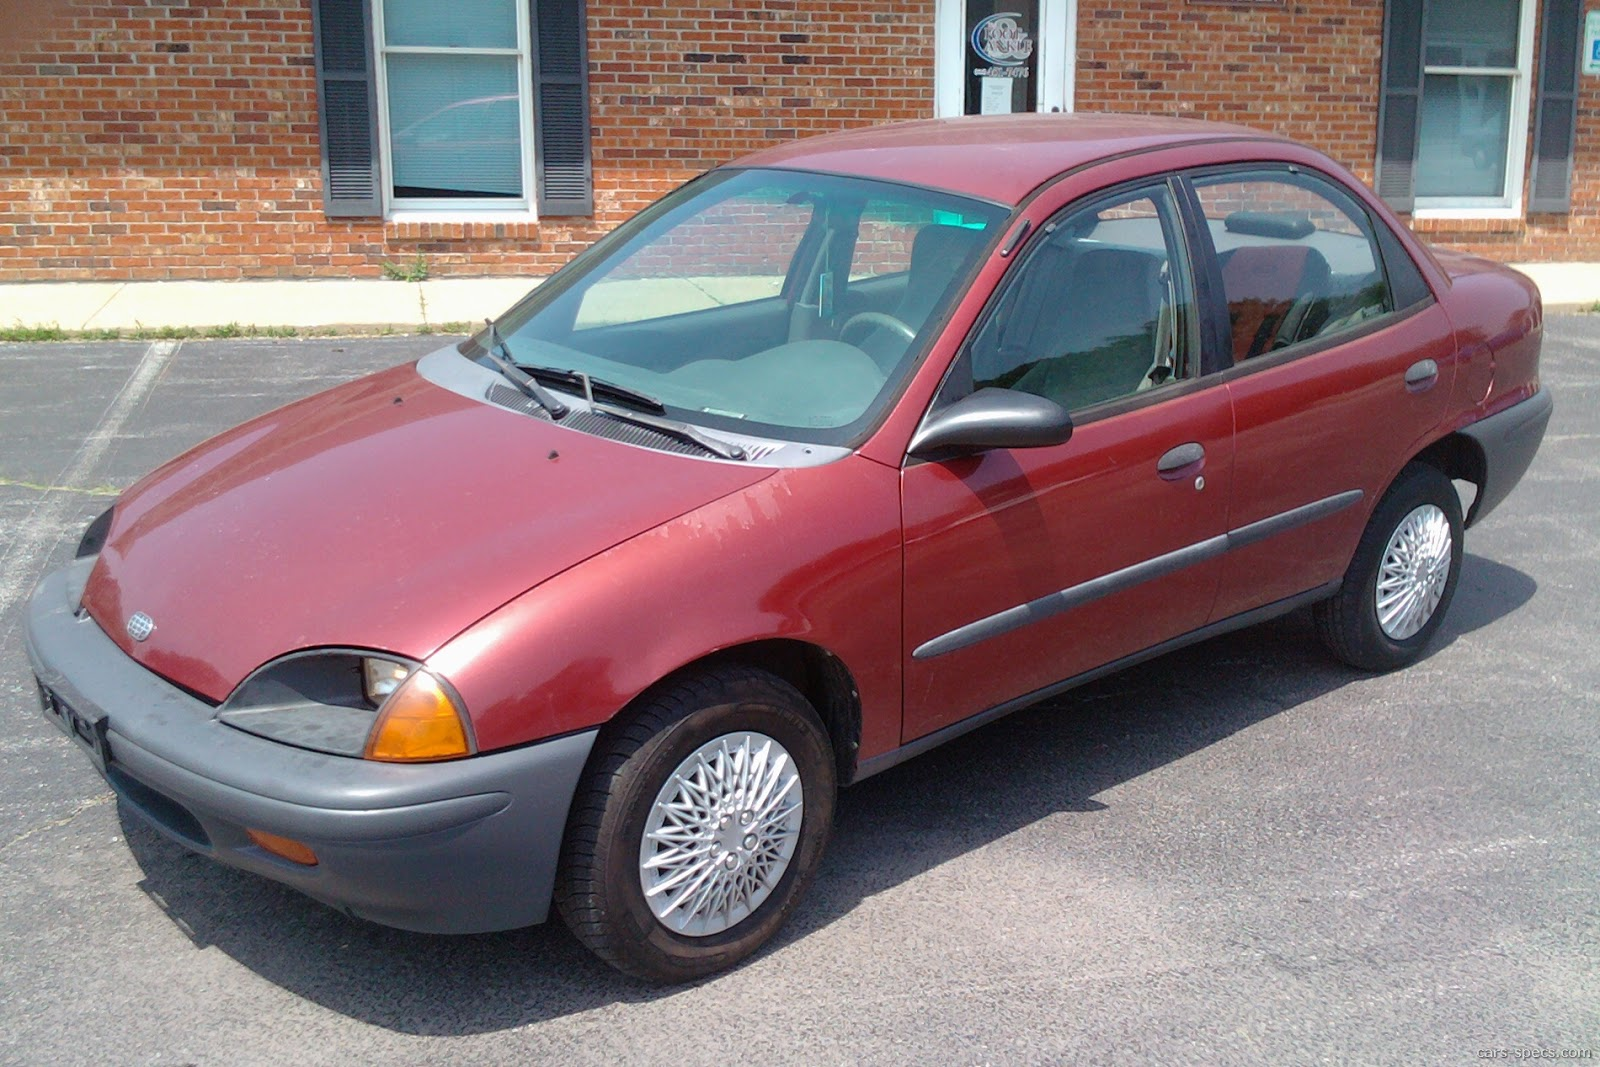 1995 Geo Metro Hatchback Specifications, Pictures, Prices